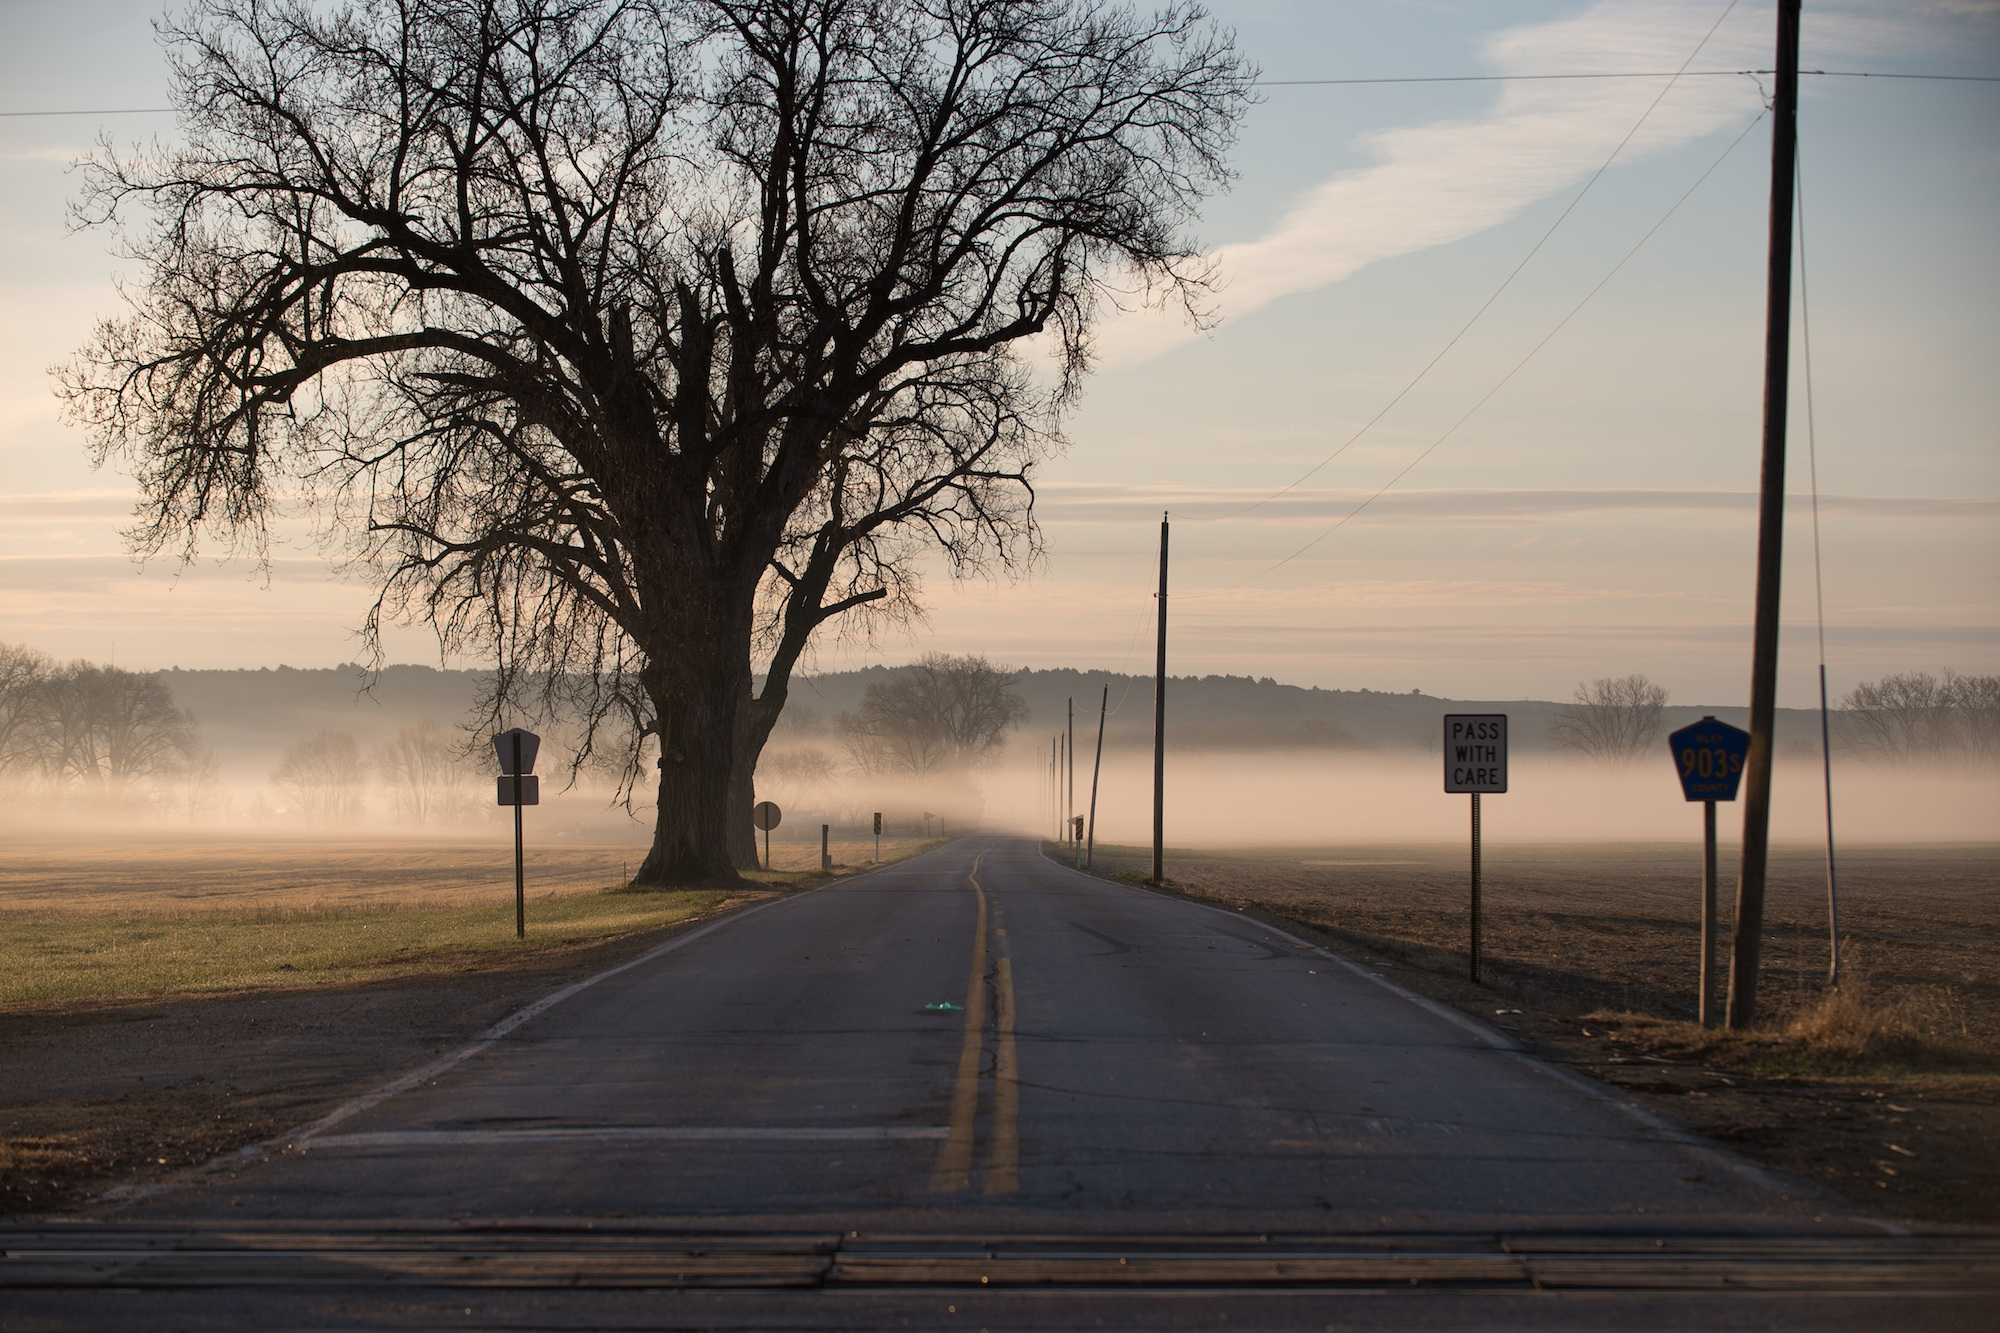 Just south of Manhattan, Kansas at sunrise. Early morning fog from the Kansas River covers soybean and corn, dry crop fields farmed by small, local, independent farmers. This area is in a flood zone, with sandy soil in the valley of the Flint Hills, and scattered with trees